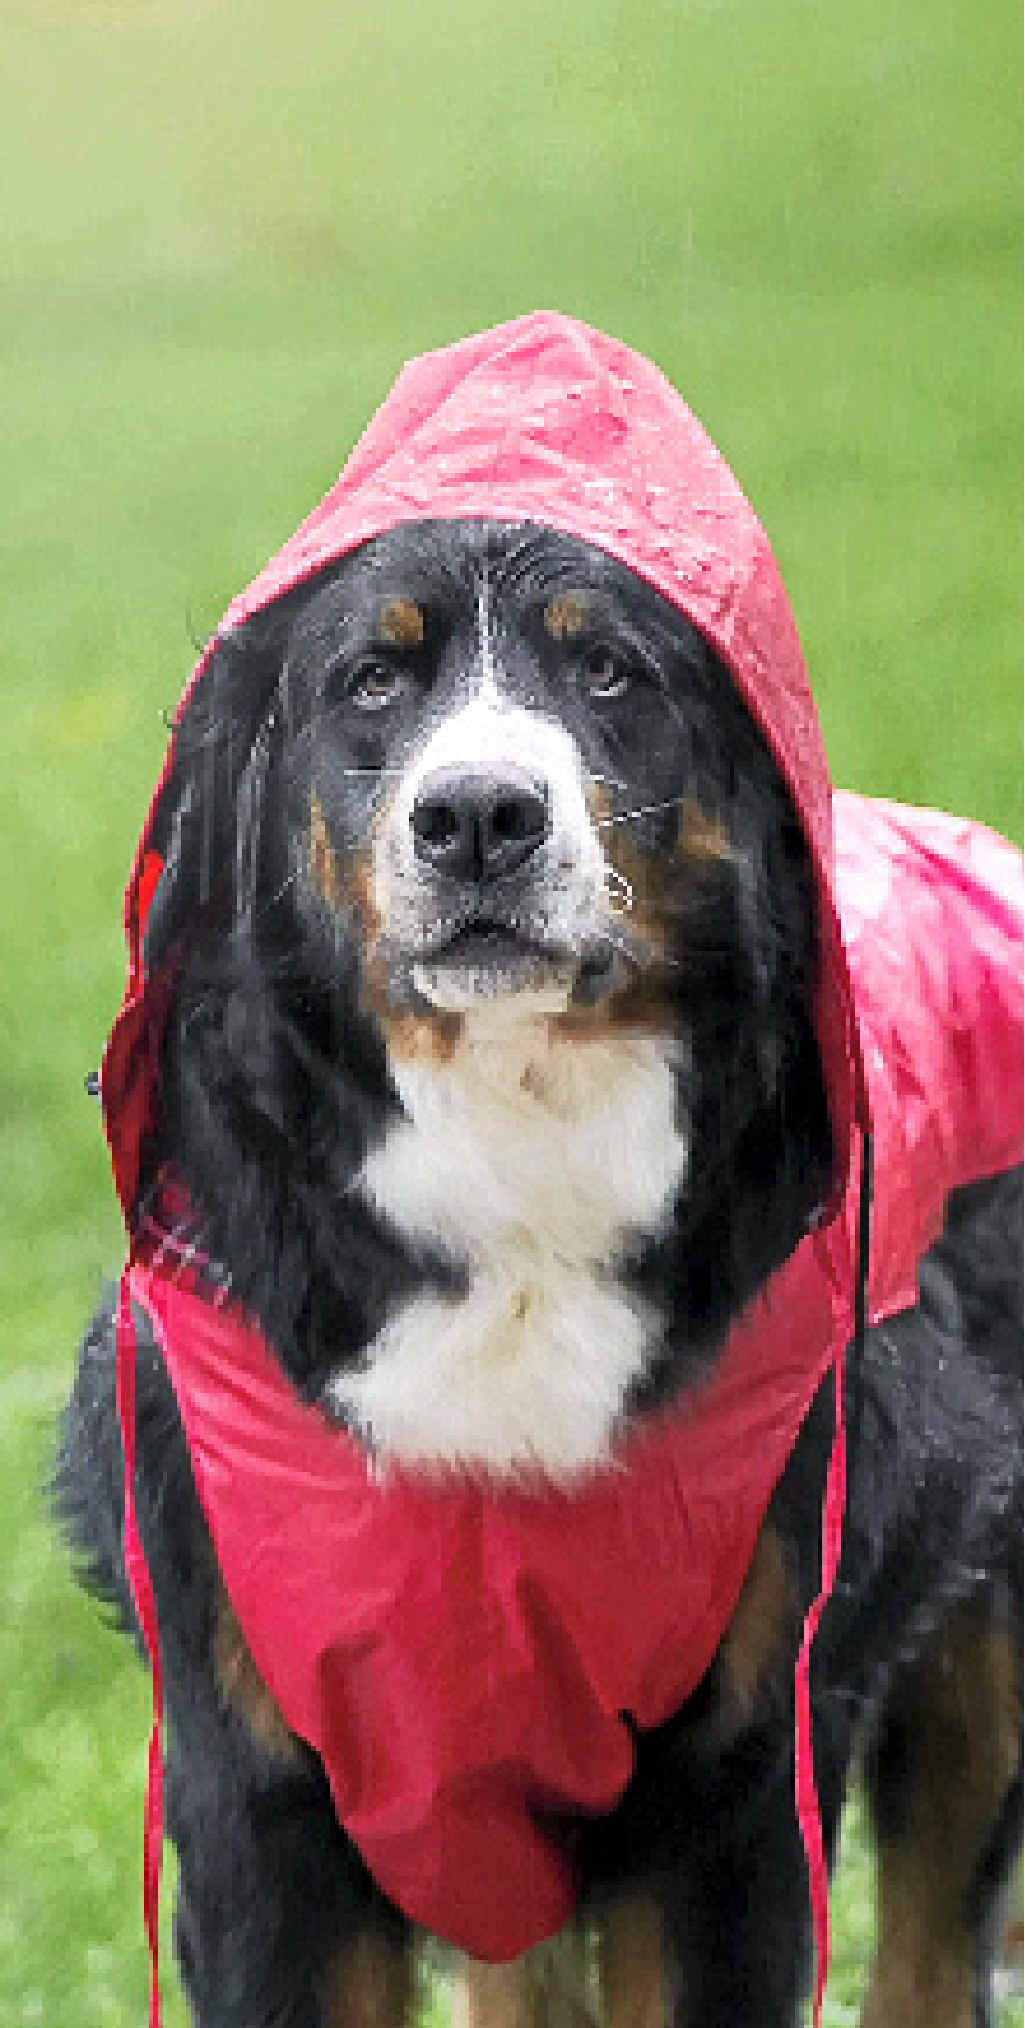 ABOVE: Bernese mountain dog dressed for rain.